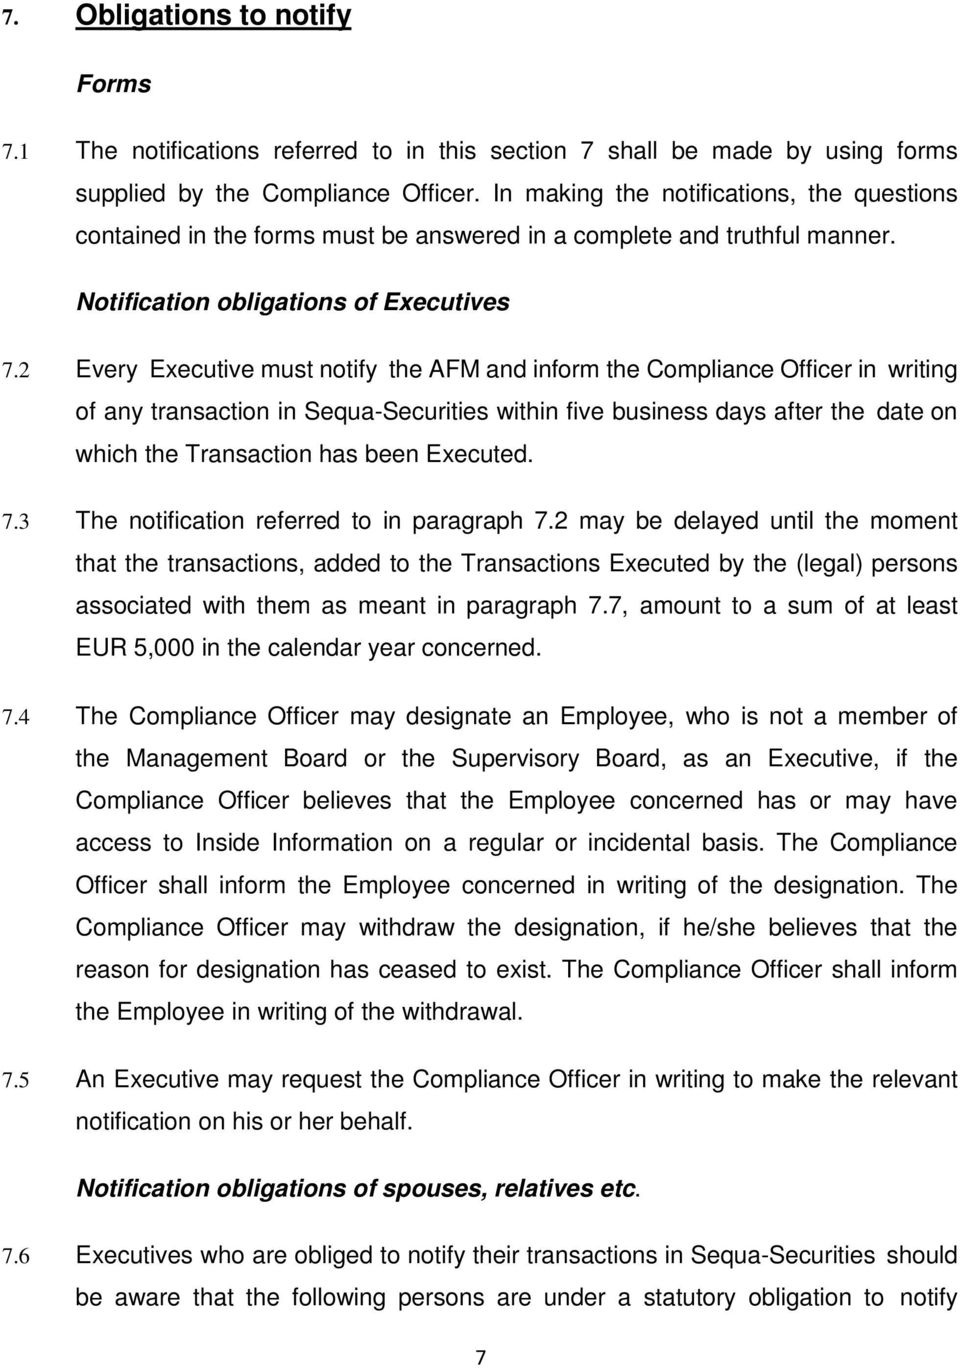 2 Every Executive must notify the AFM and inform the Compliance Officer in writing of any transaction in Sequa-Securities within five business days after the date on which the Transaction has been